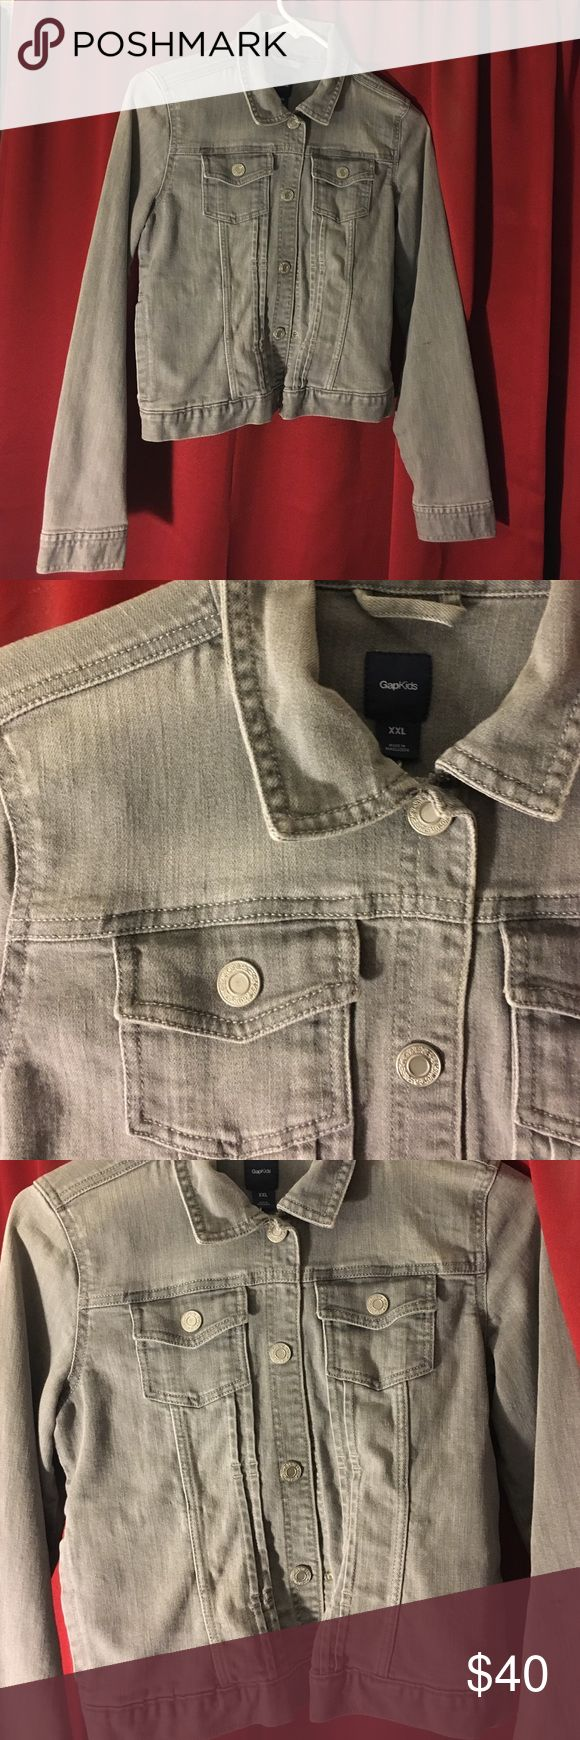 """Grey Jean Jacket Grey jean jacket from GapKids. It's an XXL for kids, but i'm 5'3"""" and it fits me like an adult's regular Small/Medium. Excellent condition! Make me an offer! 💲💲💲 GAP Jackets & Coats Jean Jackets"""